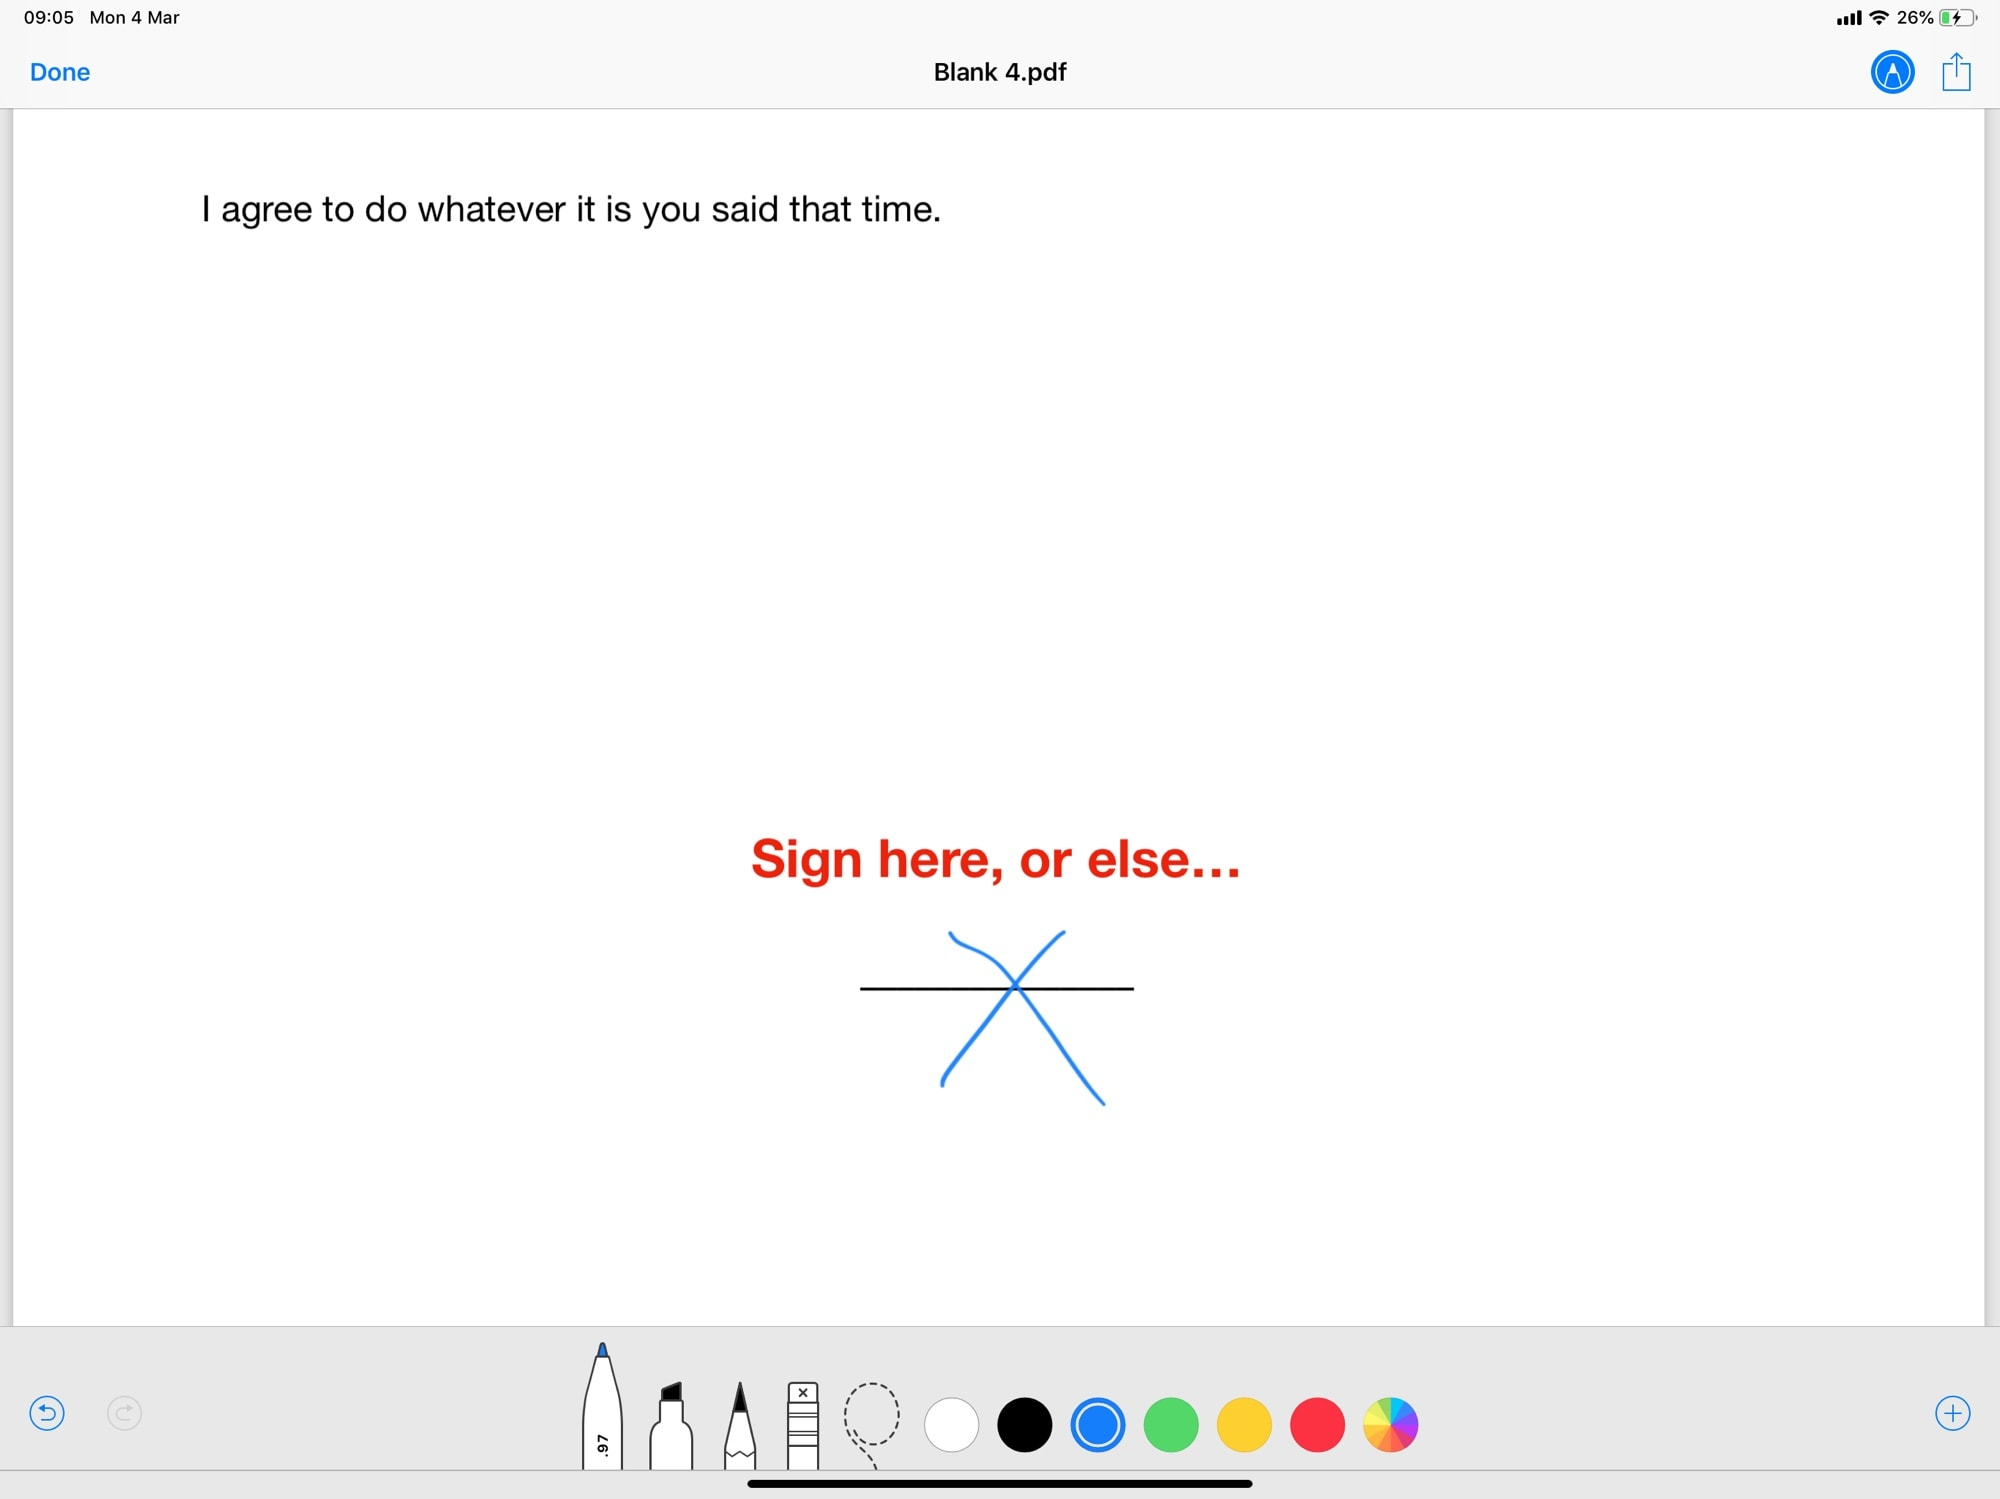 Sign here. It's easy to sign PDFs on iPad or iPhone with Instant Markup.